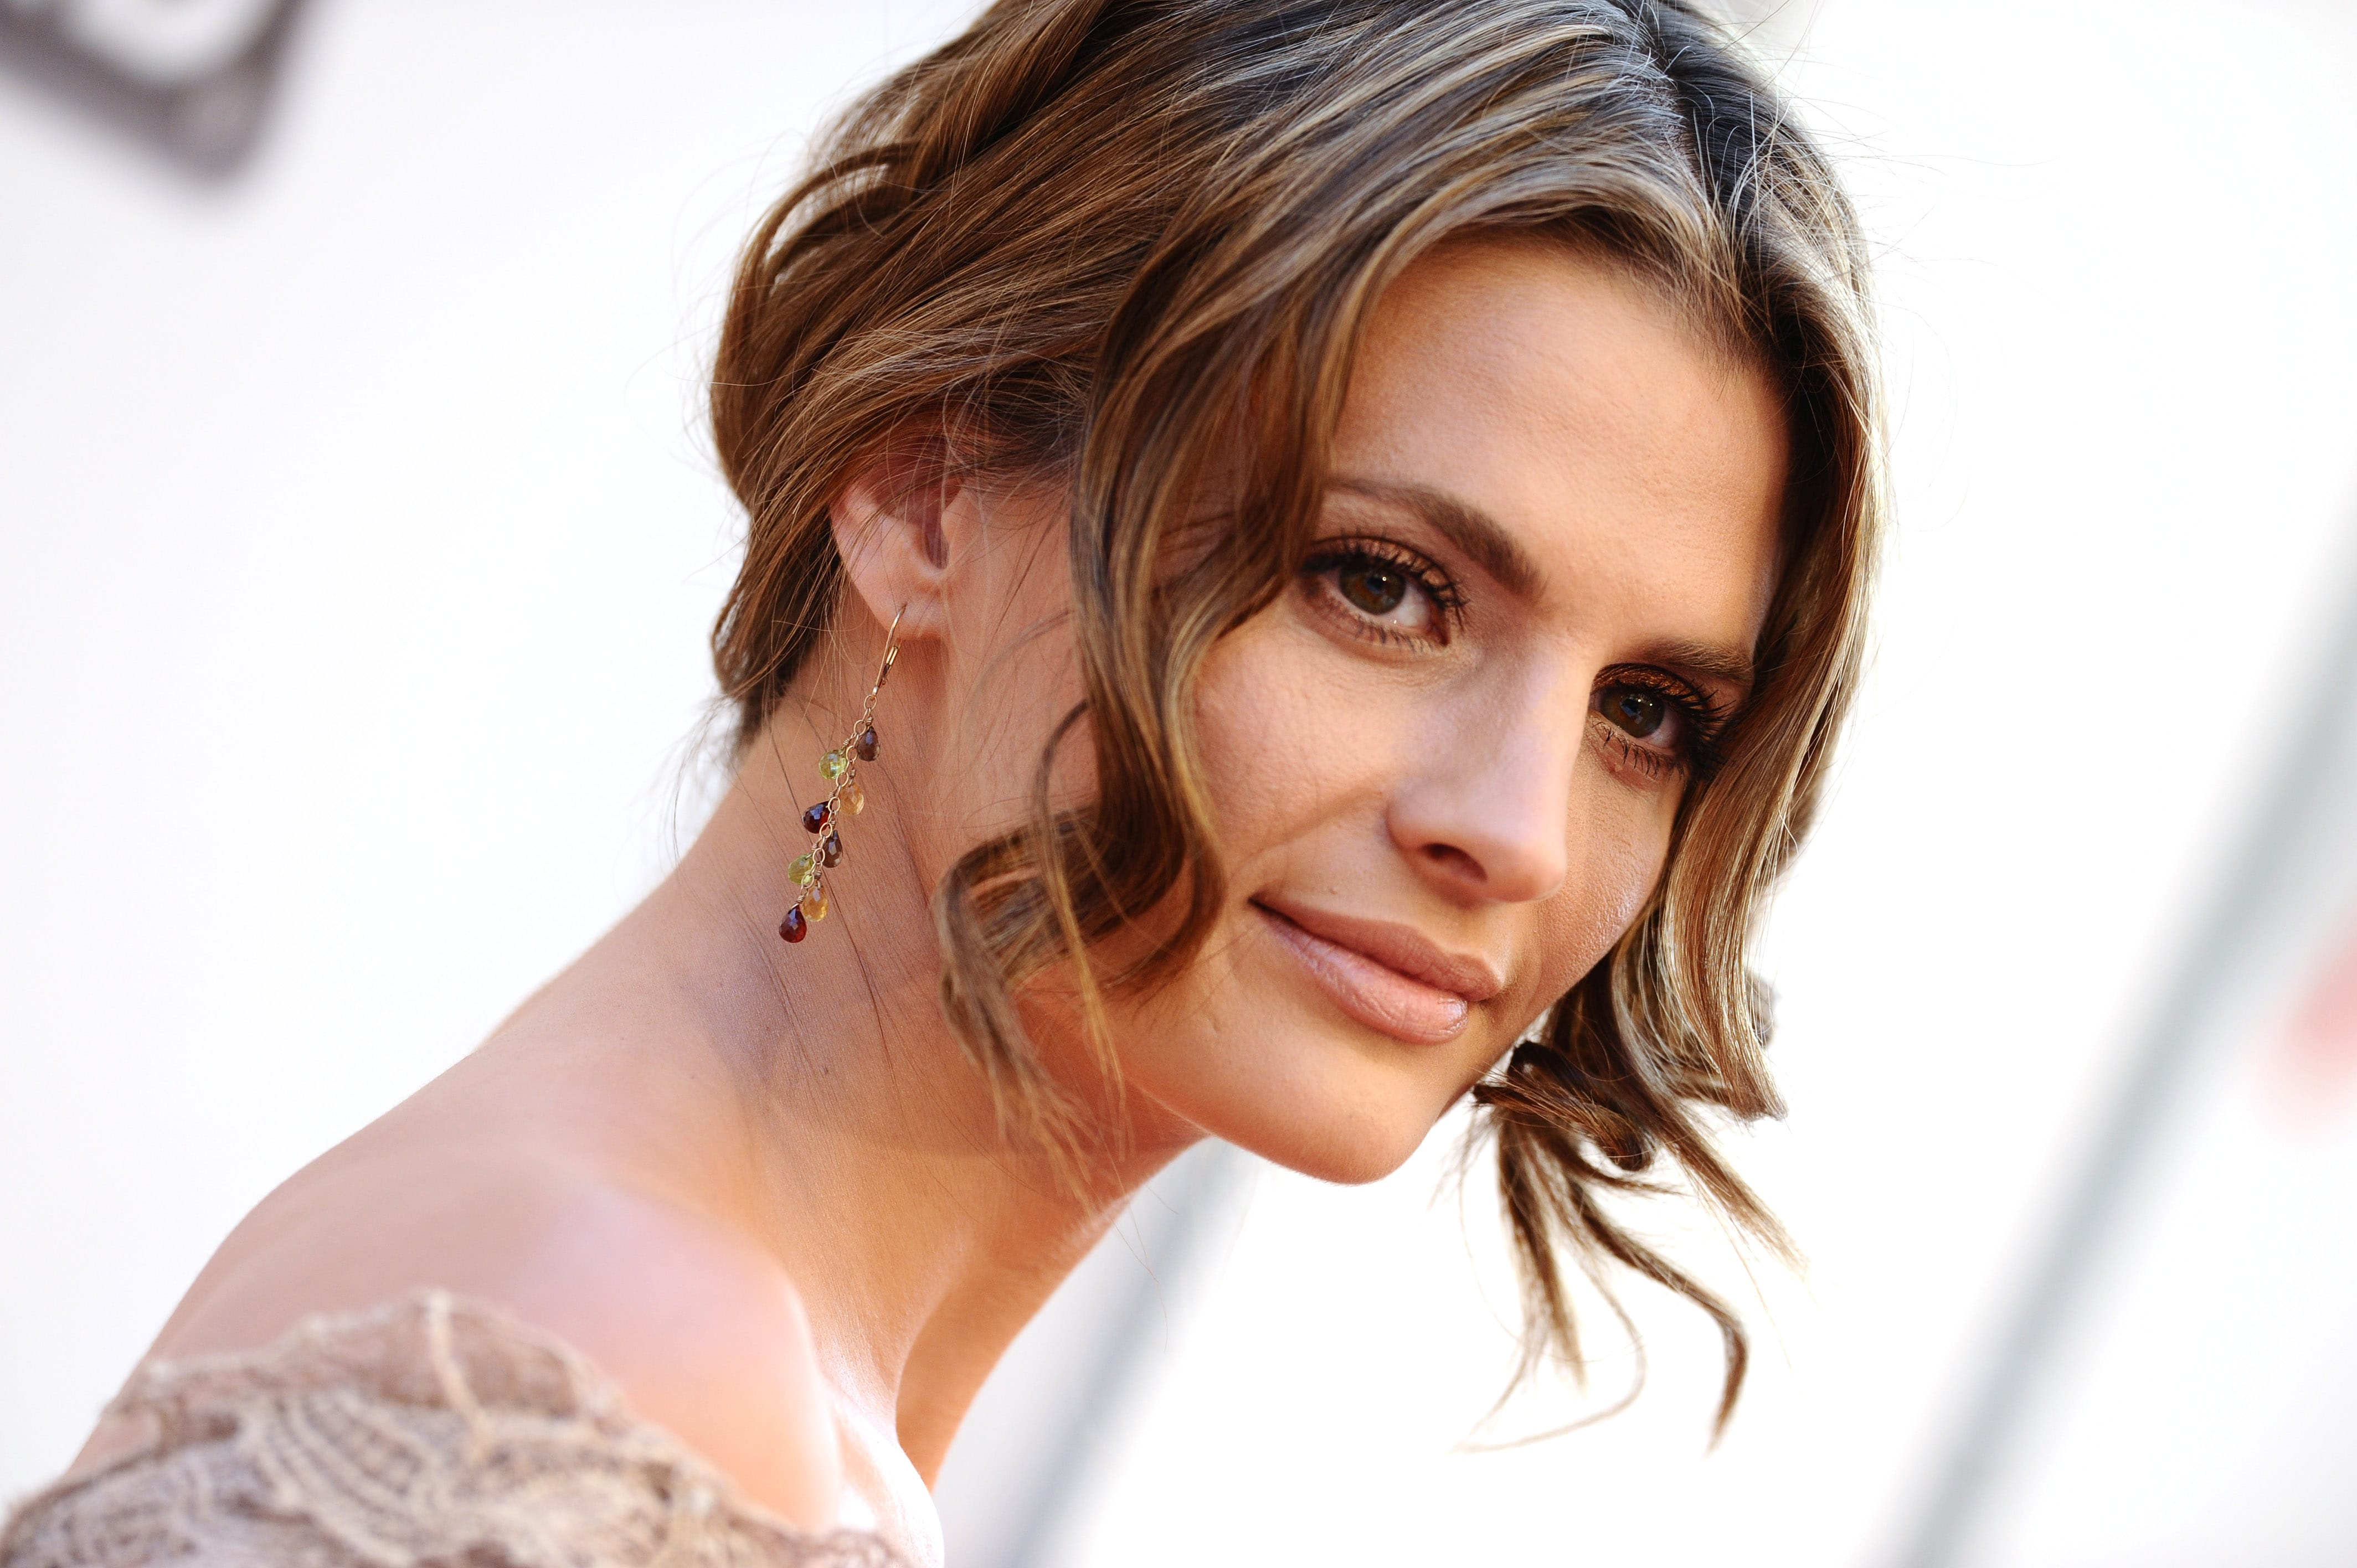 Stana Katic Background